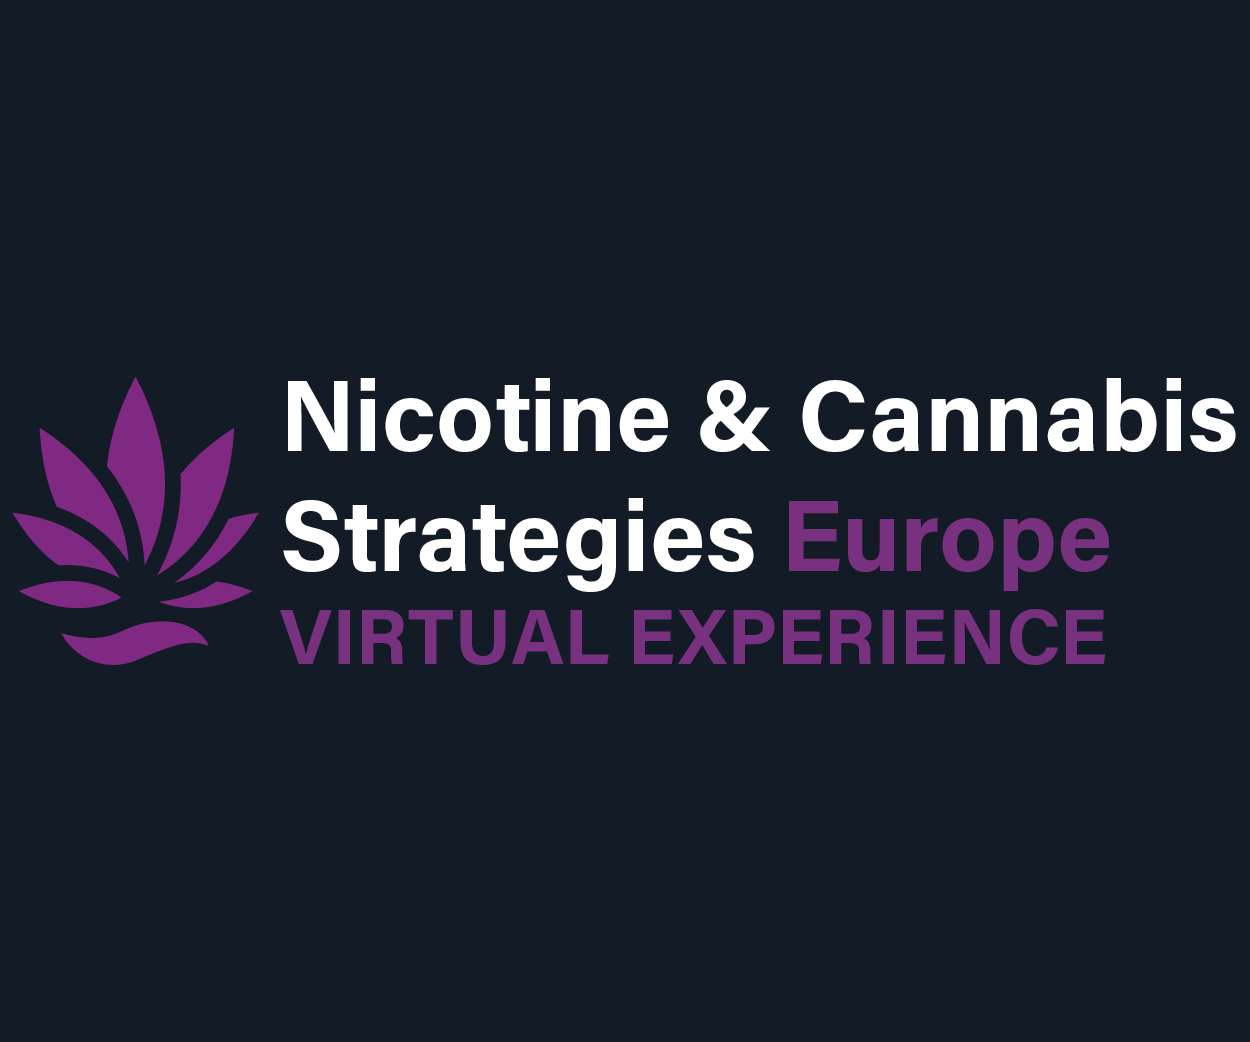 Nicotine & Cannabis Strategies Europe – Virtual Experience 2020